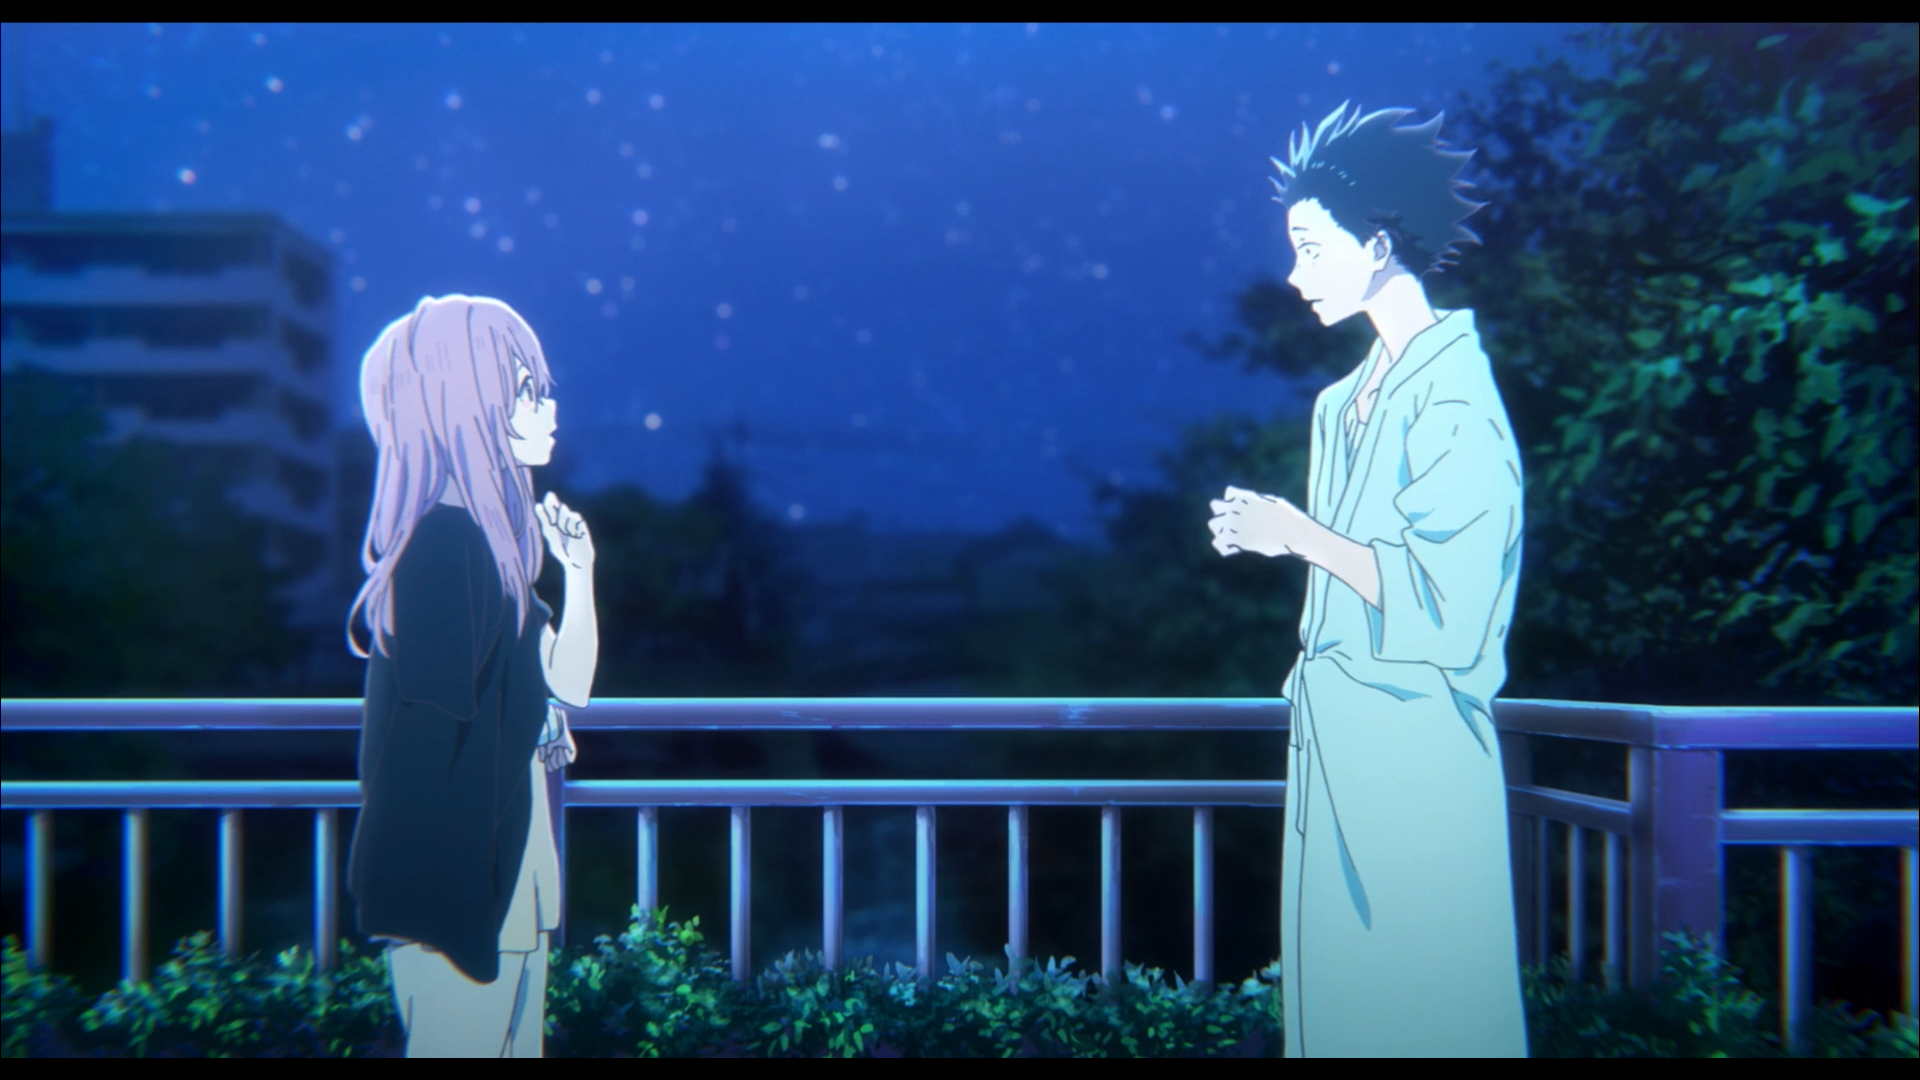 Scenery Koe No Katachi Wallpapers Living On In Koe No